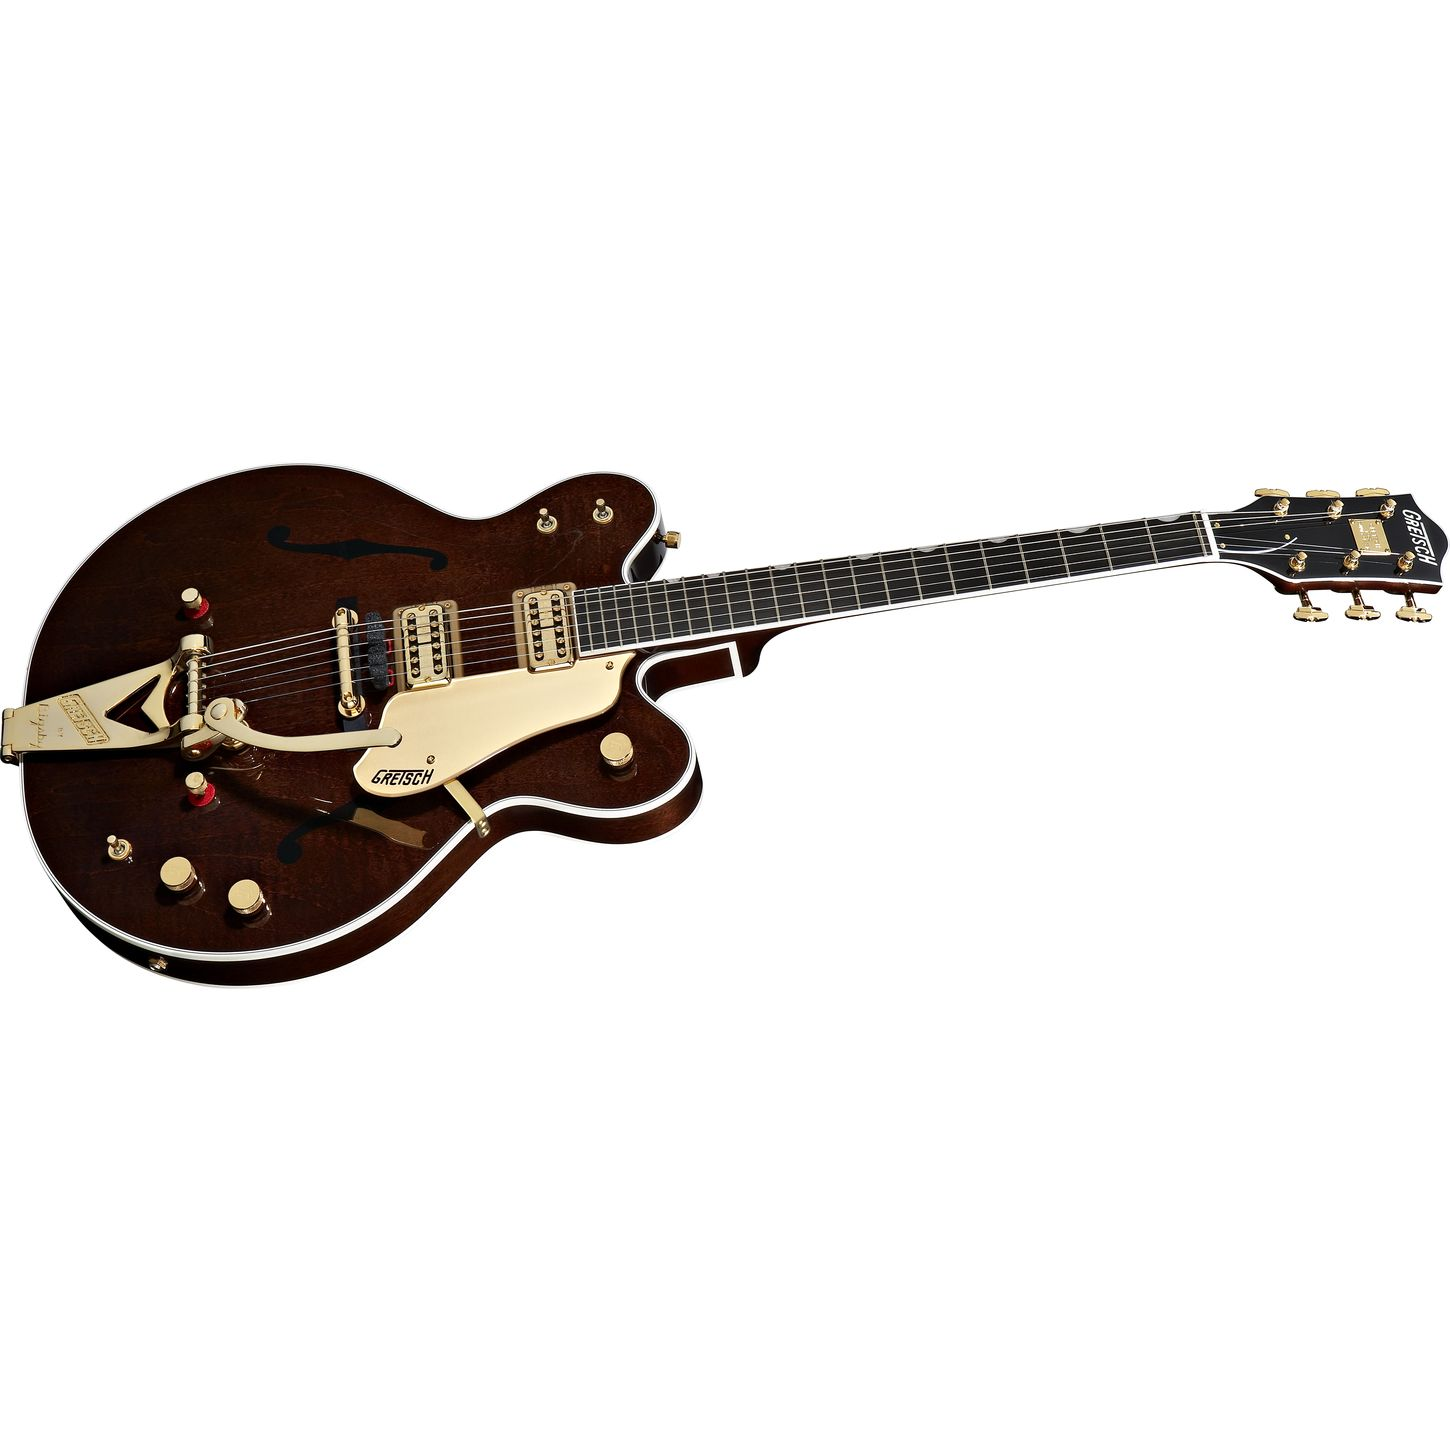 Country Electric Guitars : gretsch guitars g6122 1962 chet atkins country gentleman electric guitar walnut stain musician ~ Vivirlamusica.com Haus und Dekorationen